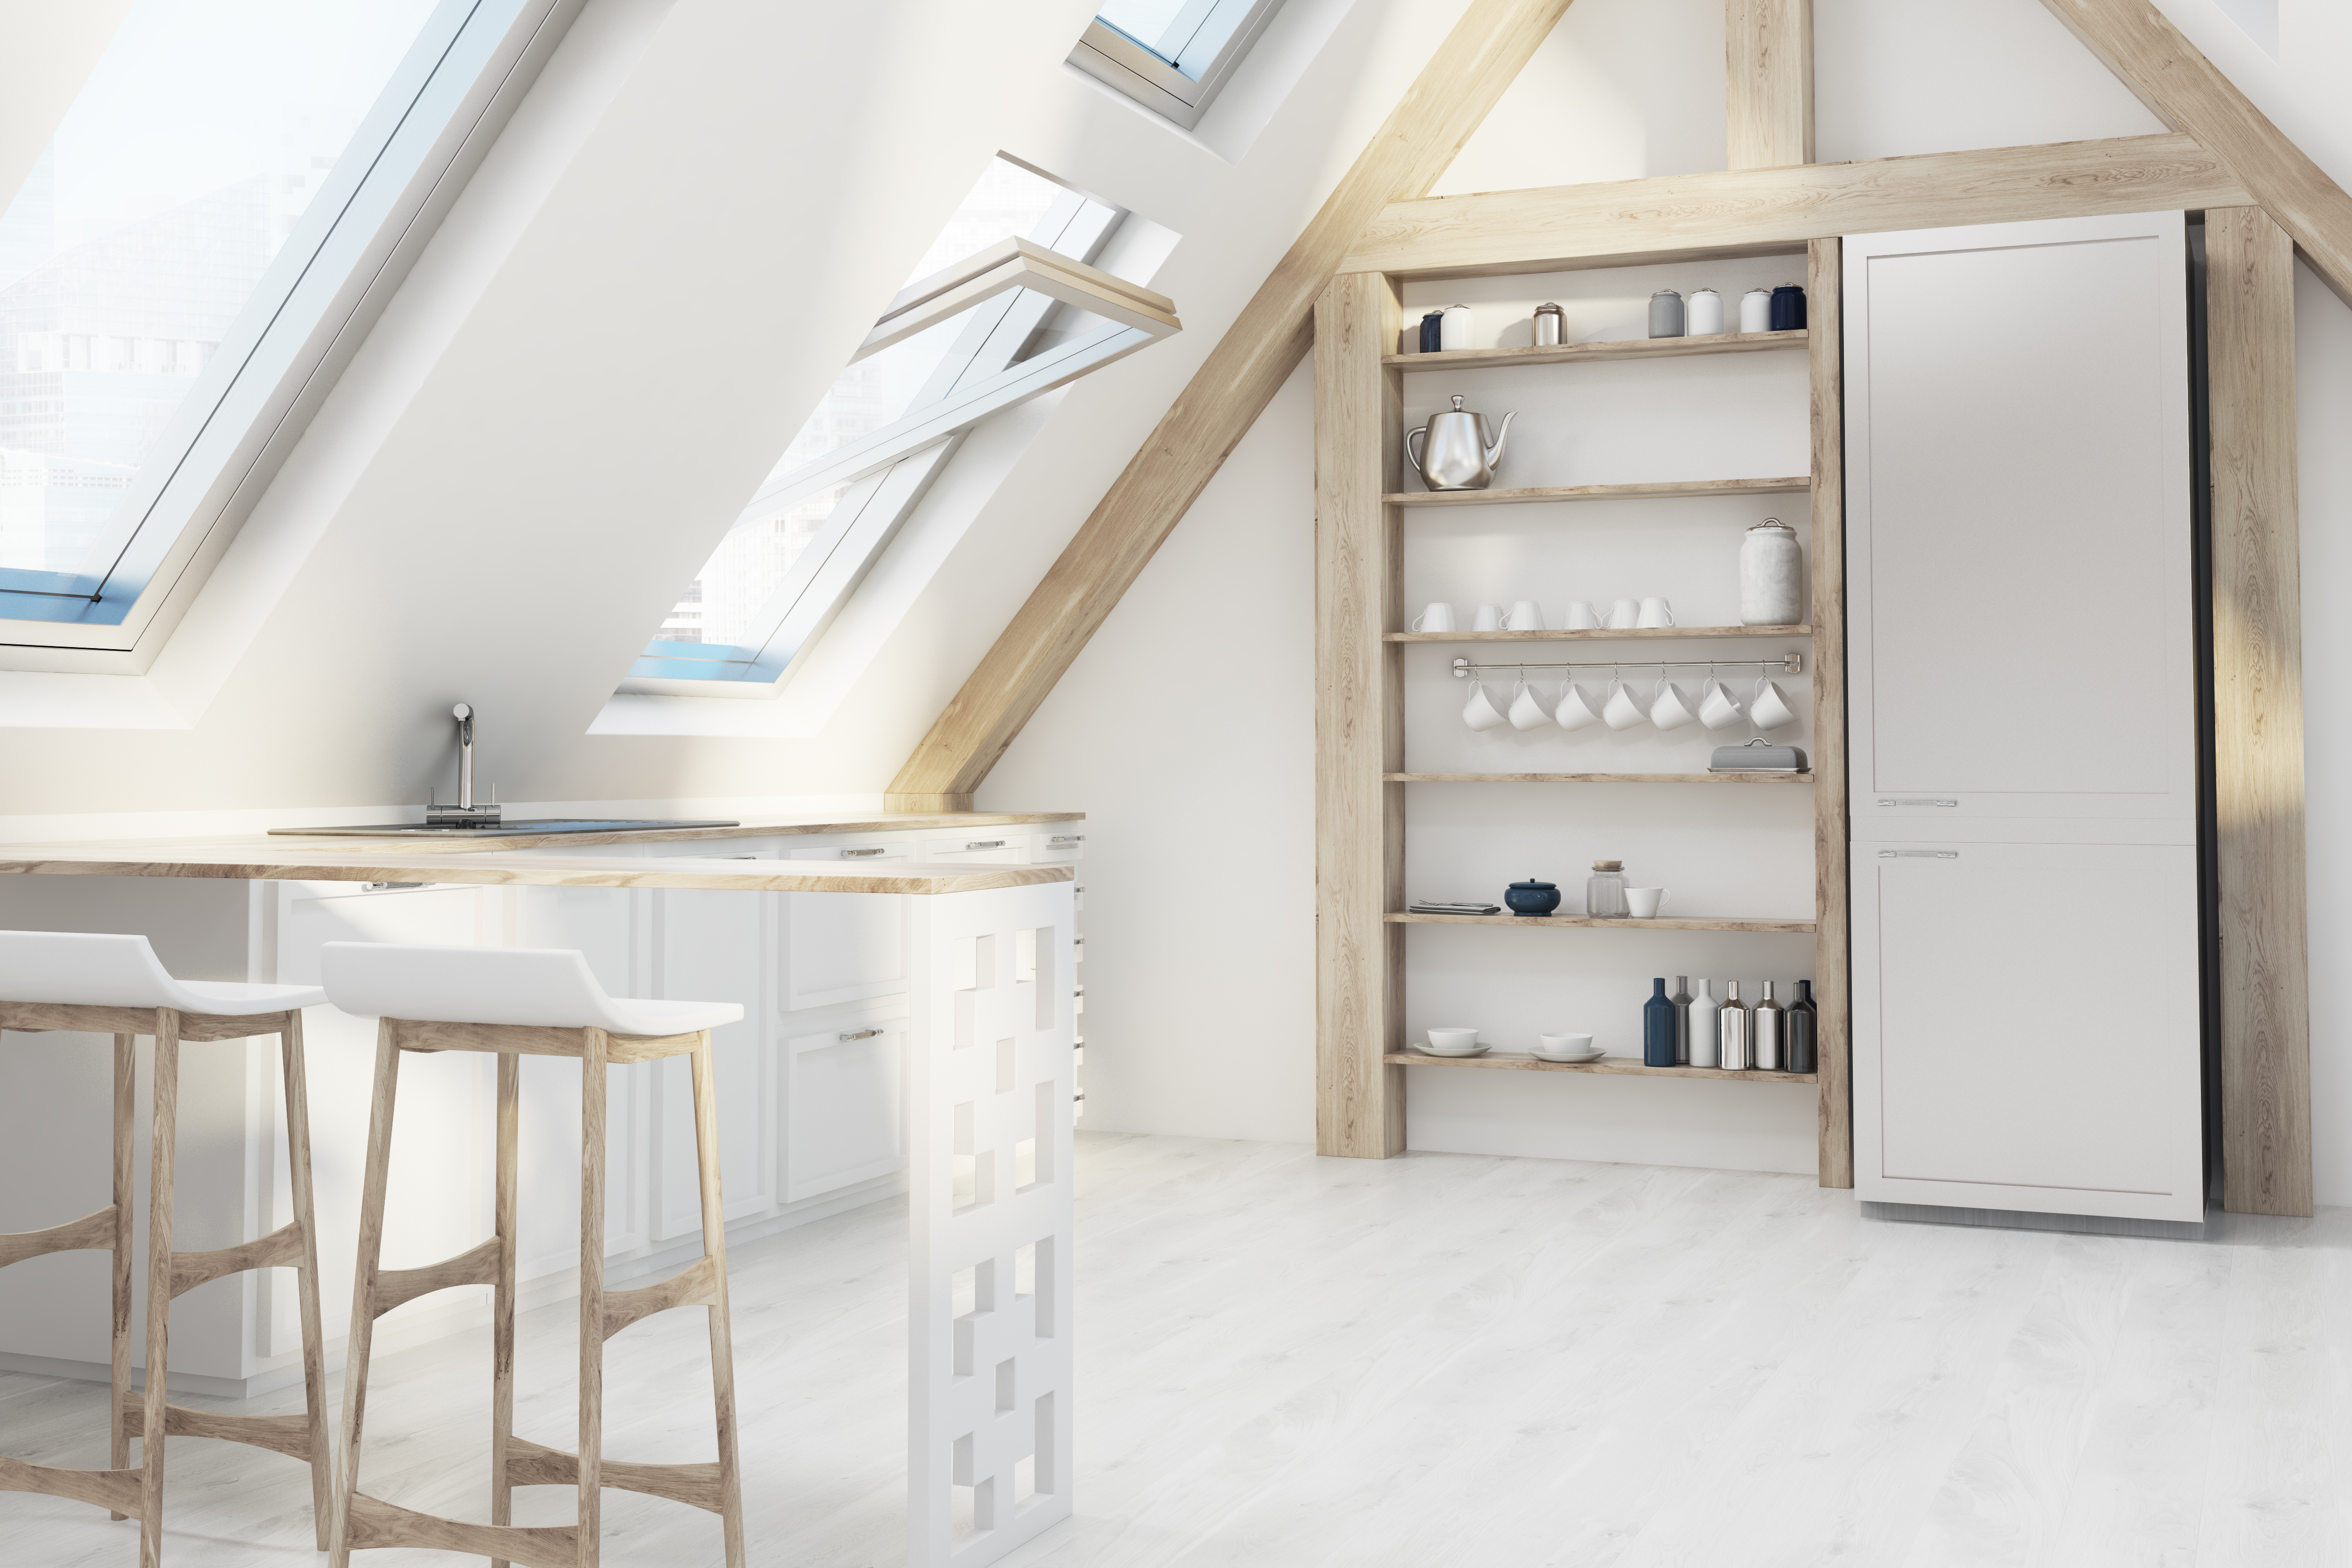 loft conversion, online prices, instant price, red kitchen, Instant Quotation, Call 08456 032 641,Extension Price, Cost of Extension, Kitchen extensions, Orangeries, General Extensions,  At Harpers, we understand that customer satisfaction is the key to success.Our experience, expertise and friendly helpful approach has helped us to become an established and trusted name, with a reputation for courteous, professional service, Call for a free Quotation on 08456 032641, Friendly Service,cost of extension  price for extension, quotation extension, quotation building works, quote building works, 321uk, 321,321 home, 321 provide solutions to your home improvement requirements, build, renovate, improve, convert, , 321 services, domestic extensions, builder fleet, 321builder, 321 extension, 321extension, extension builder, domestic builder, builder fleet, builder farnborough builder hook, builder camberley, builder basingstoke builder guildford, builder farnham, builder Hartley Wintney domestic builder, builder elstead, builder liss, builder chiddingfold, builder witley, builder oxshott builder claygate,builder surbiton, builder basing, recommended builder fleet, recommended builder farnborough, recommended builder hook, recommended builder camberley, recommended builder basingstoke recommended builder guildford, recommended builder farnham, recommended builder Hartley Wintney, recommended domestic builder, recommended builder elstead, recommended builder liss,recommended builder chiddingfold, recommended builder witley, recommended builder oxshott, recommended builder claygate, recommended builder surbiton, recommended builder basing, local builder fleet, local builder farnborough, local builder hook, local builder camberley, local builder basingstoke, local builder guildford, local builder farnham, local builder Hartley Wintney, local builder windlesham, local builder ascot, local builder sunningdale, local builder virginia water, local builder lightwater, local builder dogmersfield, local builder spencers wood ,home improvements, 321 electrical installations, 321 plumbing, 321 kitchens, 321 property investments, 321 marketing, 321 proof reading, 321 project management,Our experience, expertise and friendly helpful approach has helped us to become an established and trusted name, with a reputation for courteous, professional service, Call for a free Quotation on 08456 032641, Friendly Service, Fleet, Farnborough, Hook, Hartley Wintney, Camberley, Basingstoke, Old Basing, Sandhurst, Crowthorne, Finchampstead, Farnham, Guildford, Ripley, Send, Church Crookham, Winchfield, Dogmersfield, Winchester, Eastleigh, Bordon, Petersfield, Haslemere, Hindhead, Chilworth, Bramley, Godalming, Lower Earley, Woodley, Reading, Newbury, Oxford, Sonning, Marlow, Tilehurst, Taplow, Burnham Common, Staines, Chertsey, Windsor, Hampton, Richmond, Leatherhead, Ashford Surrey, Cove, Frimley, Camberley, 321 PVCu windows, Quote for window replacement, quote for new windows, price to replace windows, Receive Free Quotation for New Windows, Quotation for Replacement French doors, quote new front door, price to replace window, Call for a free Quotation on 08456 032641, Friendly Service, Fleet, Farnborough, Hook, Hartley Wintney, Camberley, Basingstoke, Old Basing, Sandhurst, Crowthorne, Finchampstead, Farnham, Guildford, Ripley, Send, Church Crookham, Winchfield, Dogmersfield, Winchester, Eastleigh, Bordon, Petersfield, Haslemere, Hindhead, Chilworth, Bramley, Godalming, Lower Earley, Woodley, Reading, Newbury, Oxford, Sonning, Marlow, Tilehurst, Taplow, Burnham Common, Staines, Chertsey, Windsor, Hampton, Richmond, Leatherhead, Ashford Surrey, Cove, Frimley, Camberley Fleet,, Farnborough, Hook, Hartley Wintney, Camberley, Basingstoke, Old Basing, Sandhurst, Crowthorne, Finchampstead, Farnham, Guildford, Ripley, Send, Church Crookham, Winchfield, Dogmersfield, Winchester, Eastleigh, Bordon, Petersfield, Haslemere, Hindhead, Chilworth, Bramley, Godalming, Lower Earley, Woodley, Reading, Newbury, Oxford, Sonning, Marlow, Tilehurst, Taplow, Burnham Common, Staines, Chertsey, Windsor, Hampton, Richmond, Leatherhead, Ashford Surrey, Cove, Frimley, Camberley, 321 solutions, 321 Virtual office, 321 mortgages, plastering, scaffolding services ,harpers recommended builder  fleet, building work fleet, extension price fleet, build extension  farnborough, extension price hook, cost of extension hartley wintney, cost of extension elvetham heath, cost of extension cove , cost of extension church crookham,  cost of extension hart council, cost of extension sandhurst,  cost of extension yateley  cost of extension camberley cost of extension, price for extension, quotation extension, quotation building works, quote building works, 321uk, 321home, provide solutions to your home improvement requirements, build, renovate, improve, convert, , 321 services, domestic extensions, builder fleet,321builder, 321 extension, 321extension, extension builder domestic builder, builder fleet, builder farnborough, builder hook, builder camberley, builder basingstoke, builder guildford, builder farnham, builder Hartley Wintney domestic builder, builder elstead, builder liss, builder chiddingfold, builder witley, builder oxshott, builder claygate, builder surbiton, builder basing, recommended builder fleet, recommended builder farnborough, recommended builder hook, recommended builder camberley, recommended builder basingstoke, recommended builder guildford recommended builder farnham, recommended builder Hartley Wintney, recommended domestic builder, recommended builder elstead, recommended builder liss, recommended builder chiddingfold, recommended builder witley, recommended builder oxshott, recommended builder claygate, recommended builder surbiton, recommended builder basing, local builder fleet, local builder farnborough, local builder hook, local builder camberley, local builder basingstoke, local builder guildford local builder farnham, local builder Hartley Wintney, local builder windlesham, local builder ascot local builder sunningdale, local builder virginia water local builder lightwater, local builder dogmersfield local builder spencers wood ,home improvements, 321 electrical installations, 321 plumbing, 321 kitchens, 321 property investments 321 project management,ON-LINE PRICING     SPECIAL OFFERS     BUILDERS     DOUBLE GLAZING, Garage Conversions, Conversions Prices,FASCIAS SOFFITS     ORANGERIES, PROPERTY REFURBISHMENTS, DRIVES, PATIO'S, SPECIAL PROJECTS,GALLERY     EXTENSIONS, LANTERNS     ROOFING Quote     BI-FOLDS     MAINTENANCE QUOTE     DECORATING QUOTE     KITCHENS BATHROOMS     RECOMMENDATIONS     JOBS     PLUMBING HEATING     QUOTE FOR CARPENTRY     South Yorks Division     Links  QUOTATIONS ONLINE FARNHAM ASCOT ODIHAM FLEET FARNBOROUGH BASINGSTOKE CAMBERLEY WOKING READING WINNERSH LISS FARNHAM  QUOTATIONS FOR HOME IMPROVEMENTS, ODIHAM, FLEET, FARNBOROUGH, BASINGSTOKE, CAMBERLEY, WOKING, READING,EXTENSIONS, garage conversion